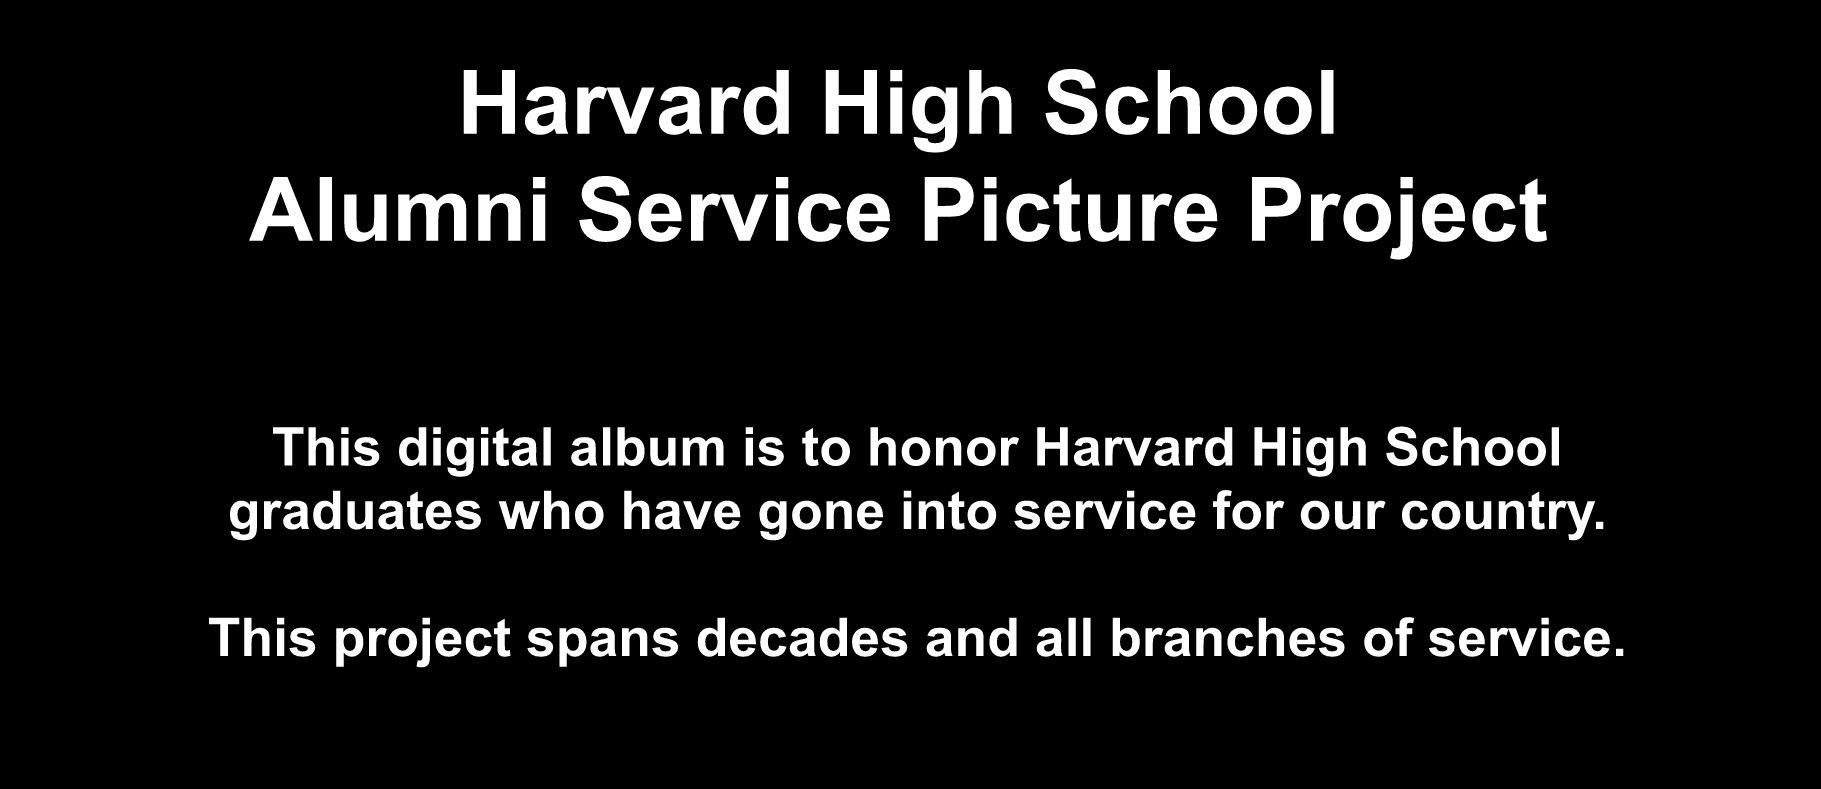 HHS Alumni Service Picture Project